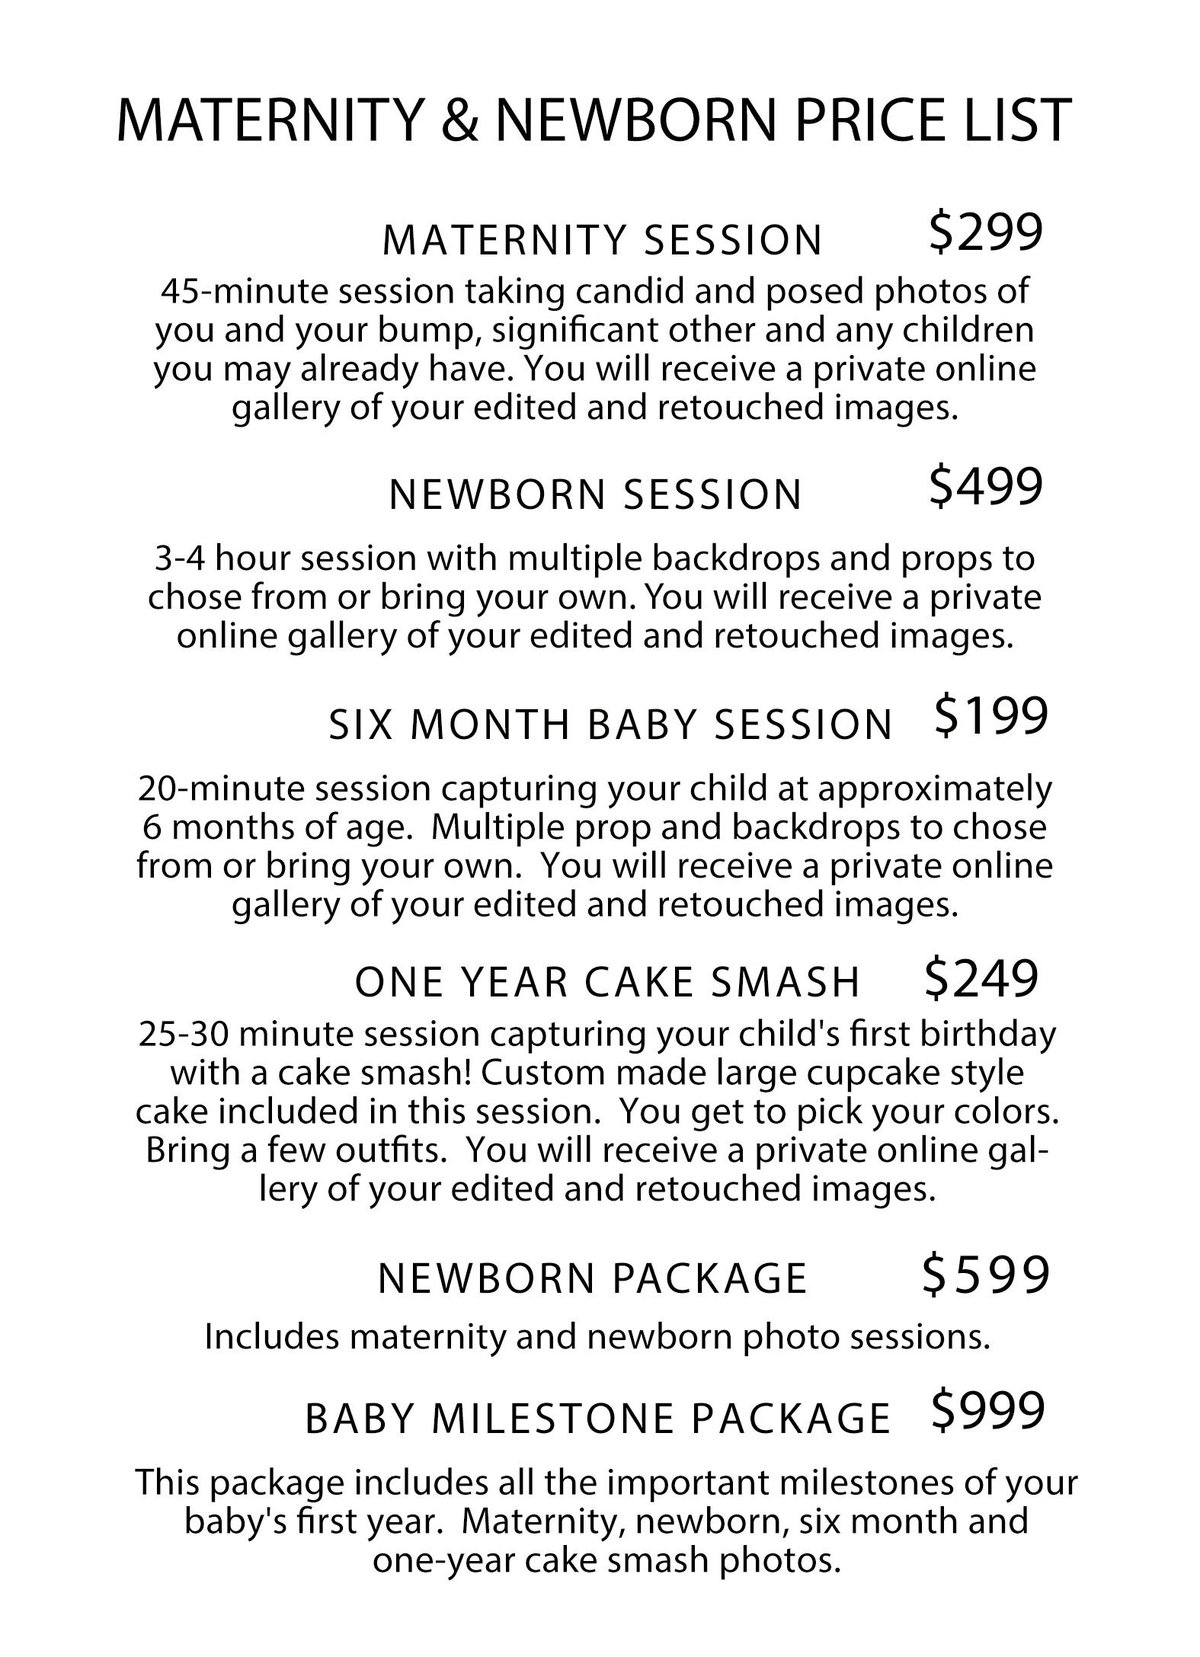 Maternity & Newborn Pricing 2017